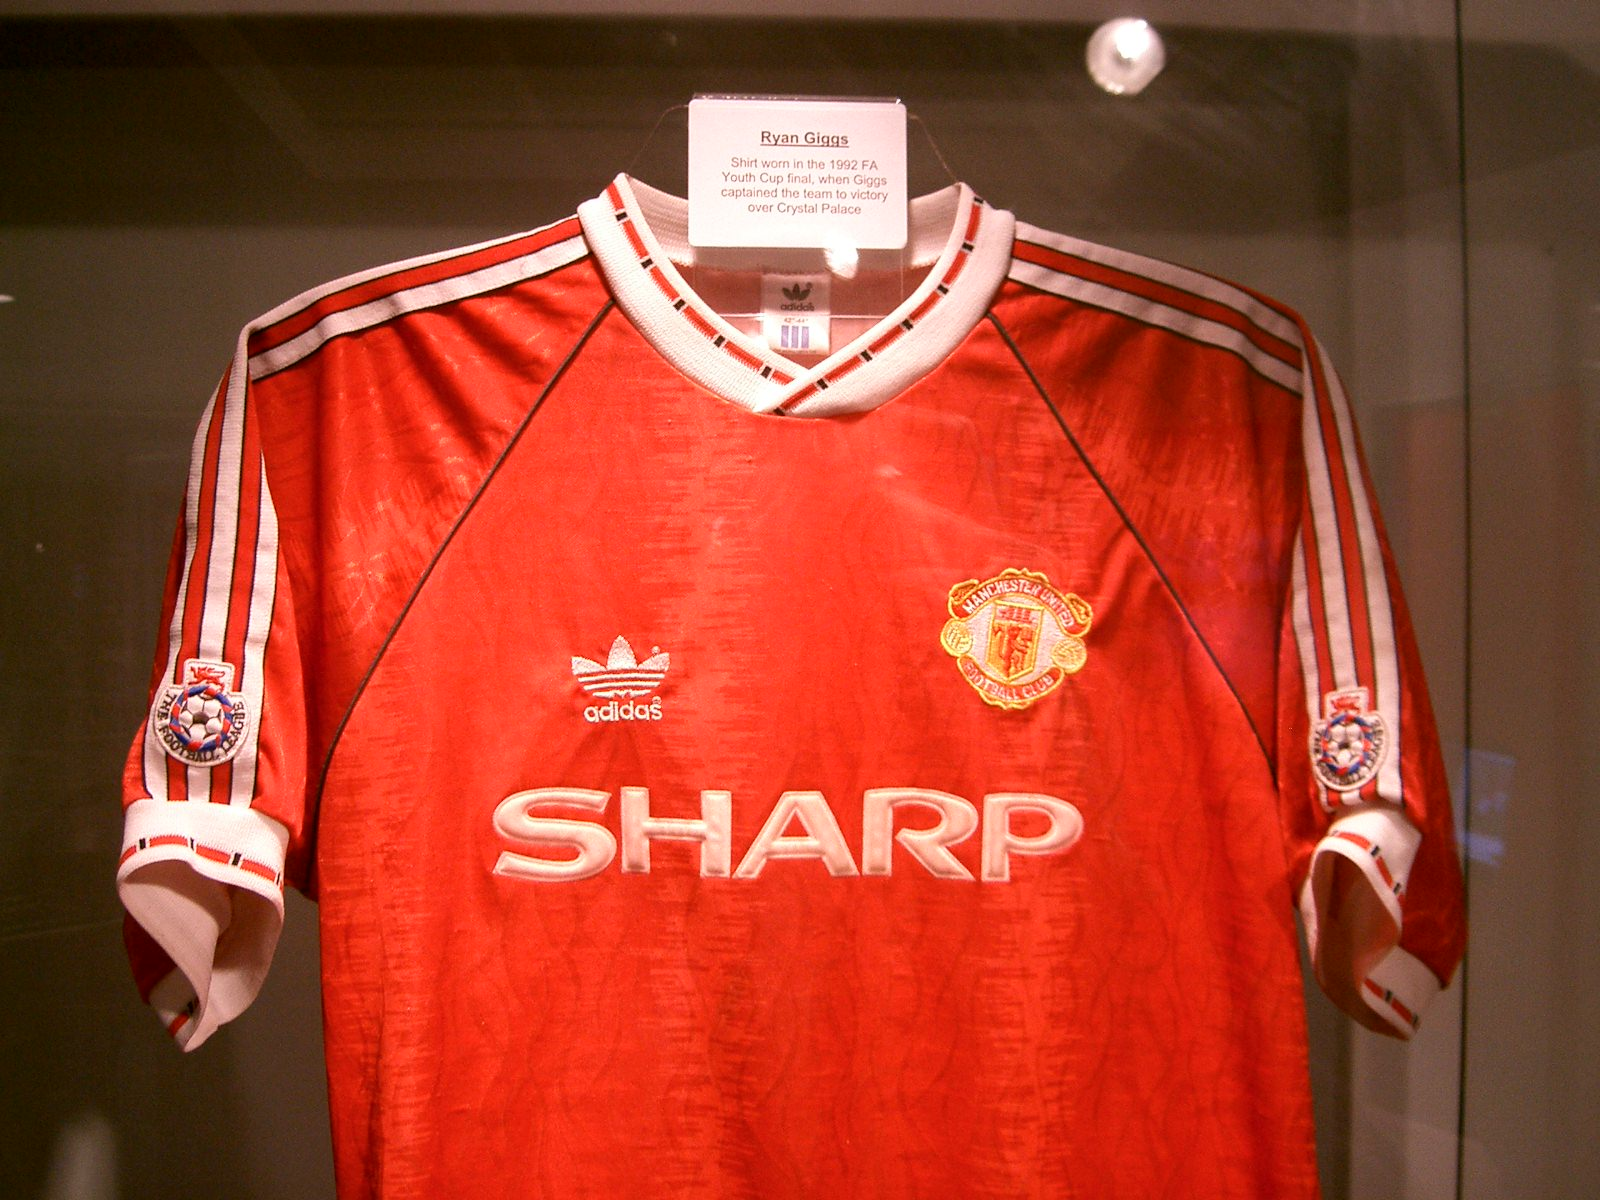 buy online f229e 6c57e manchester united jersey history on sale > OFF72% Discounts